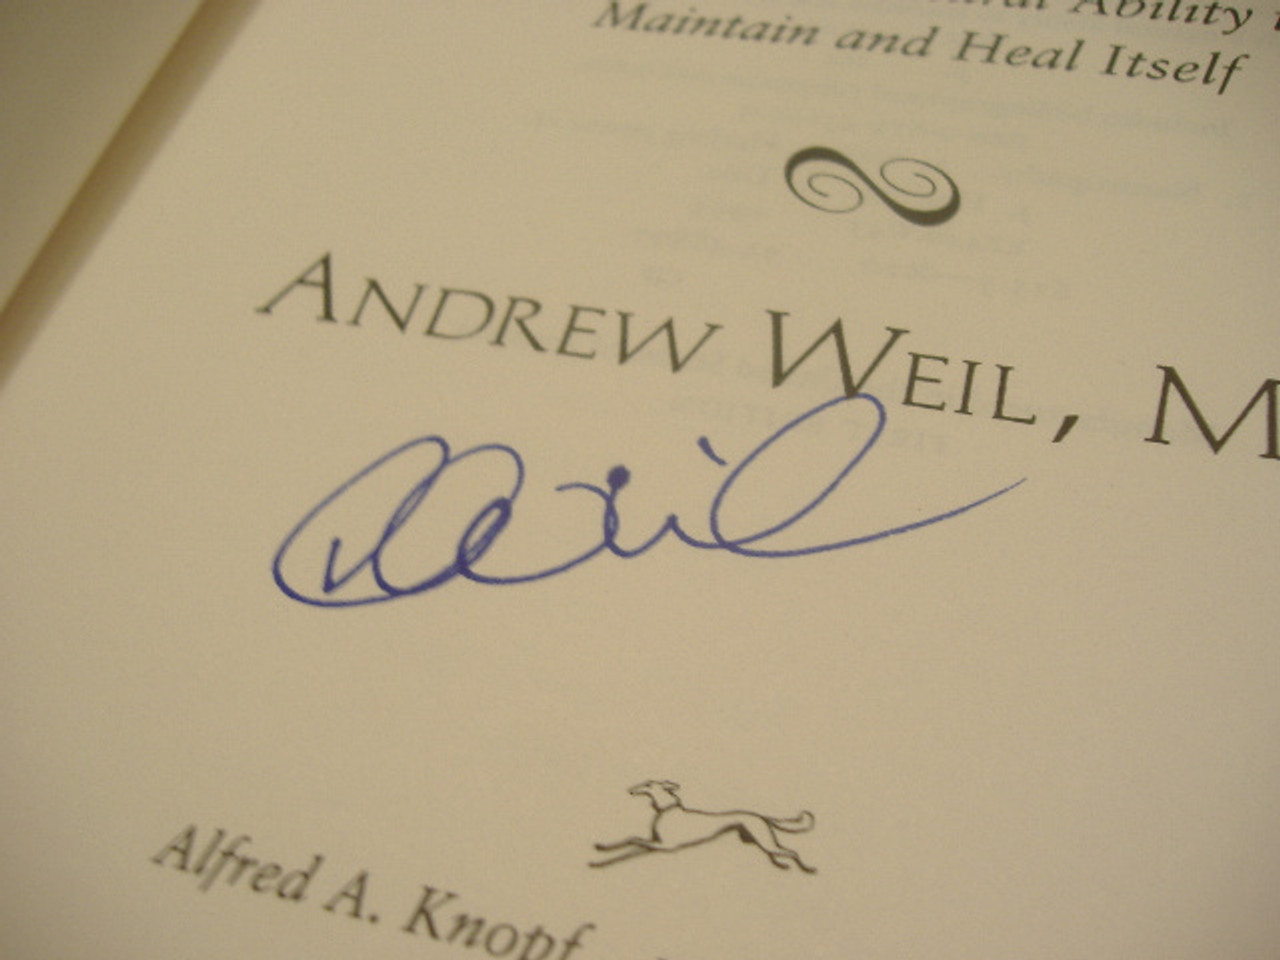 Weil, Andrew M.D.-Spontaneous Healing How To Discover And Enchance Your Body'S Natural Ability To Maintain And Heal Itself --Signed Book